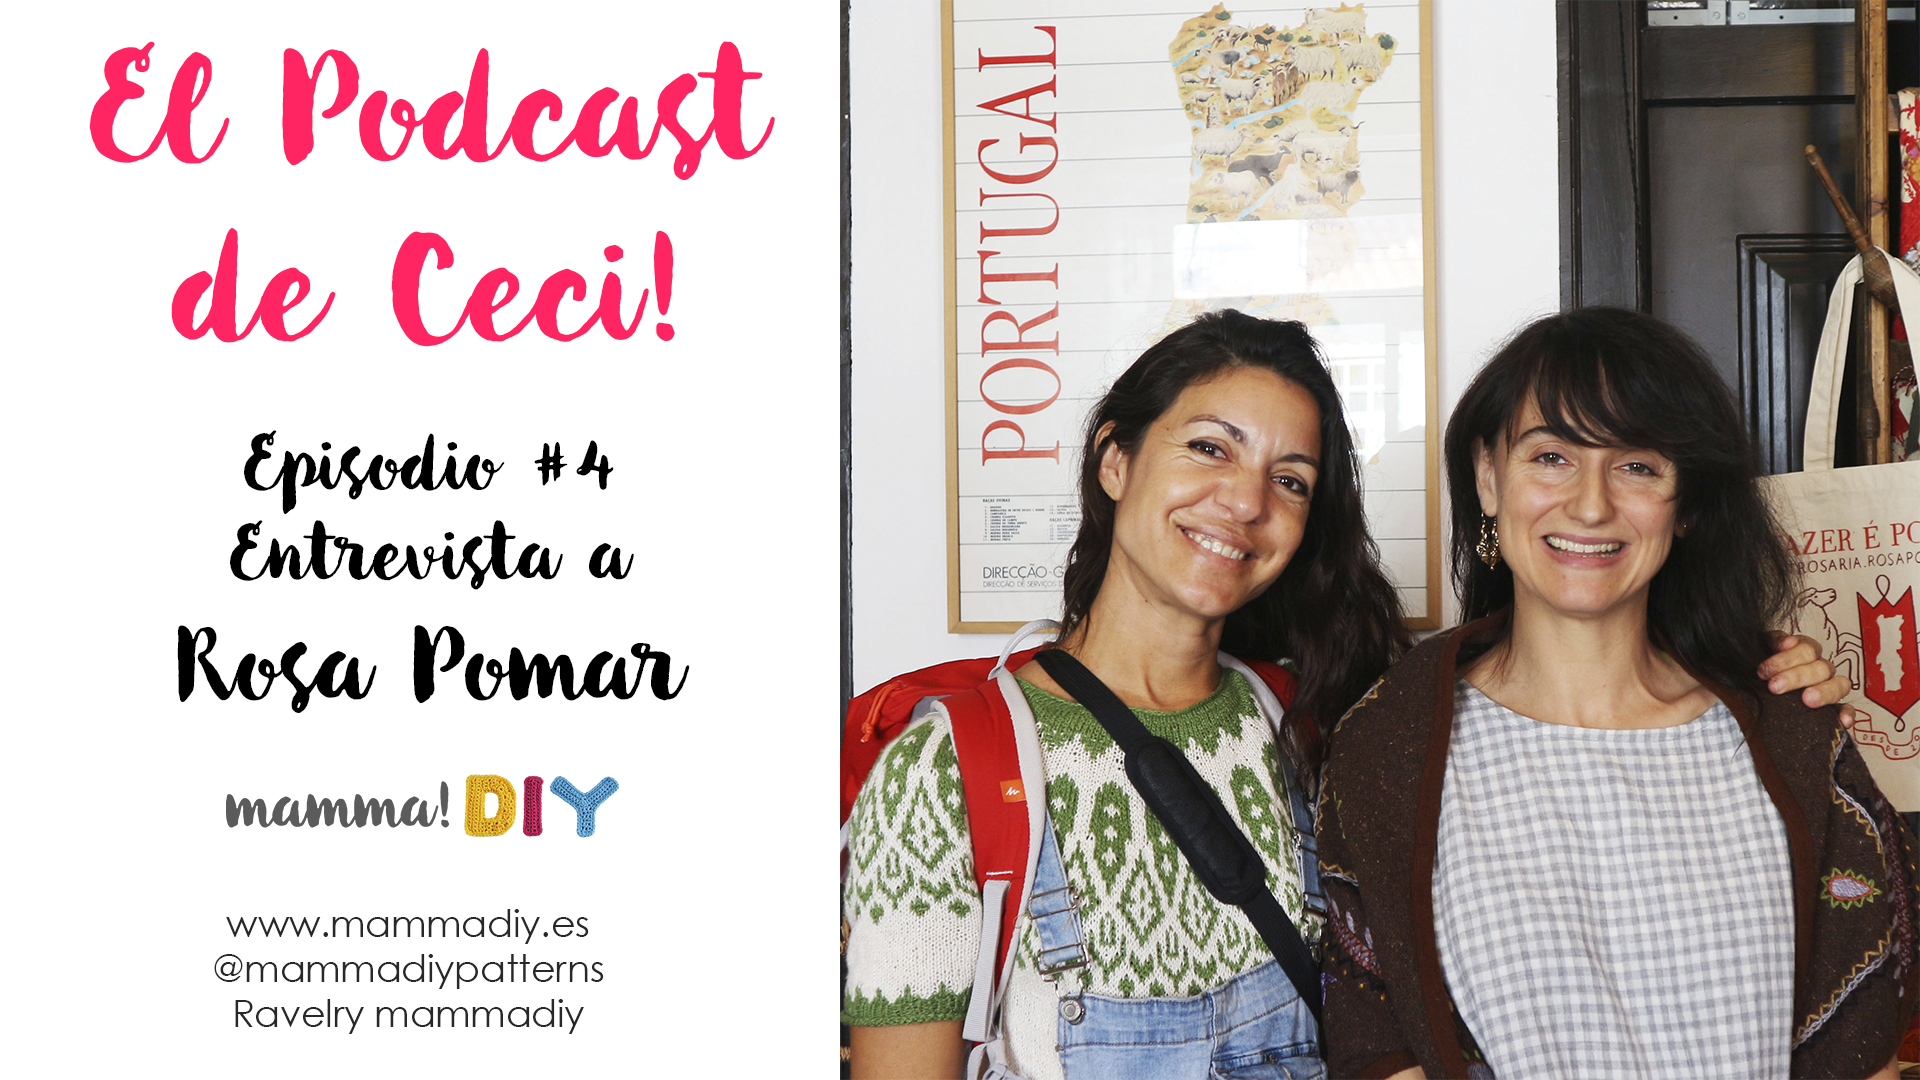 el podcast de ceci episodio 4 rosa pomar